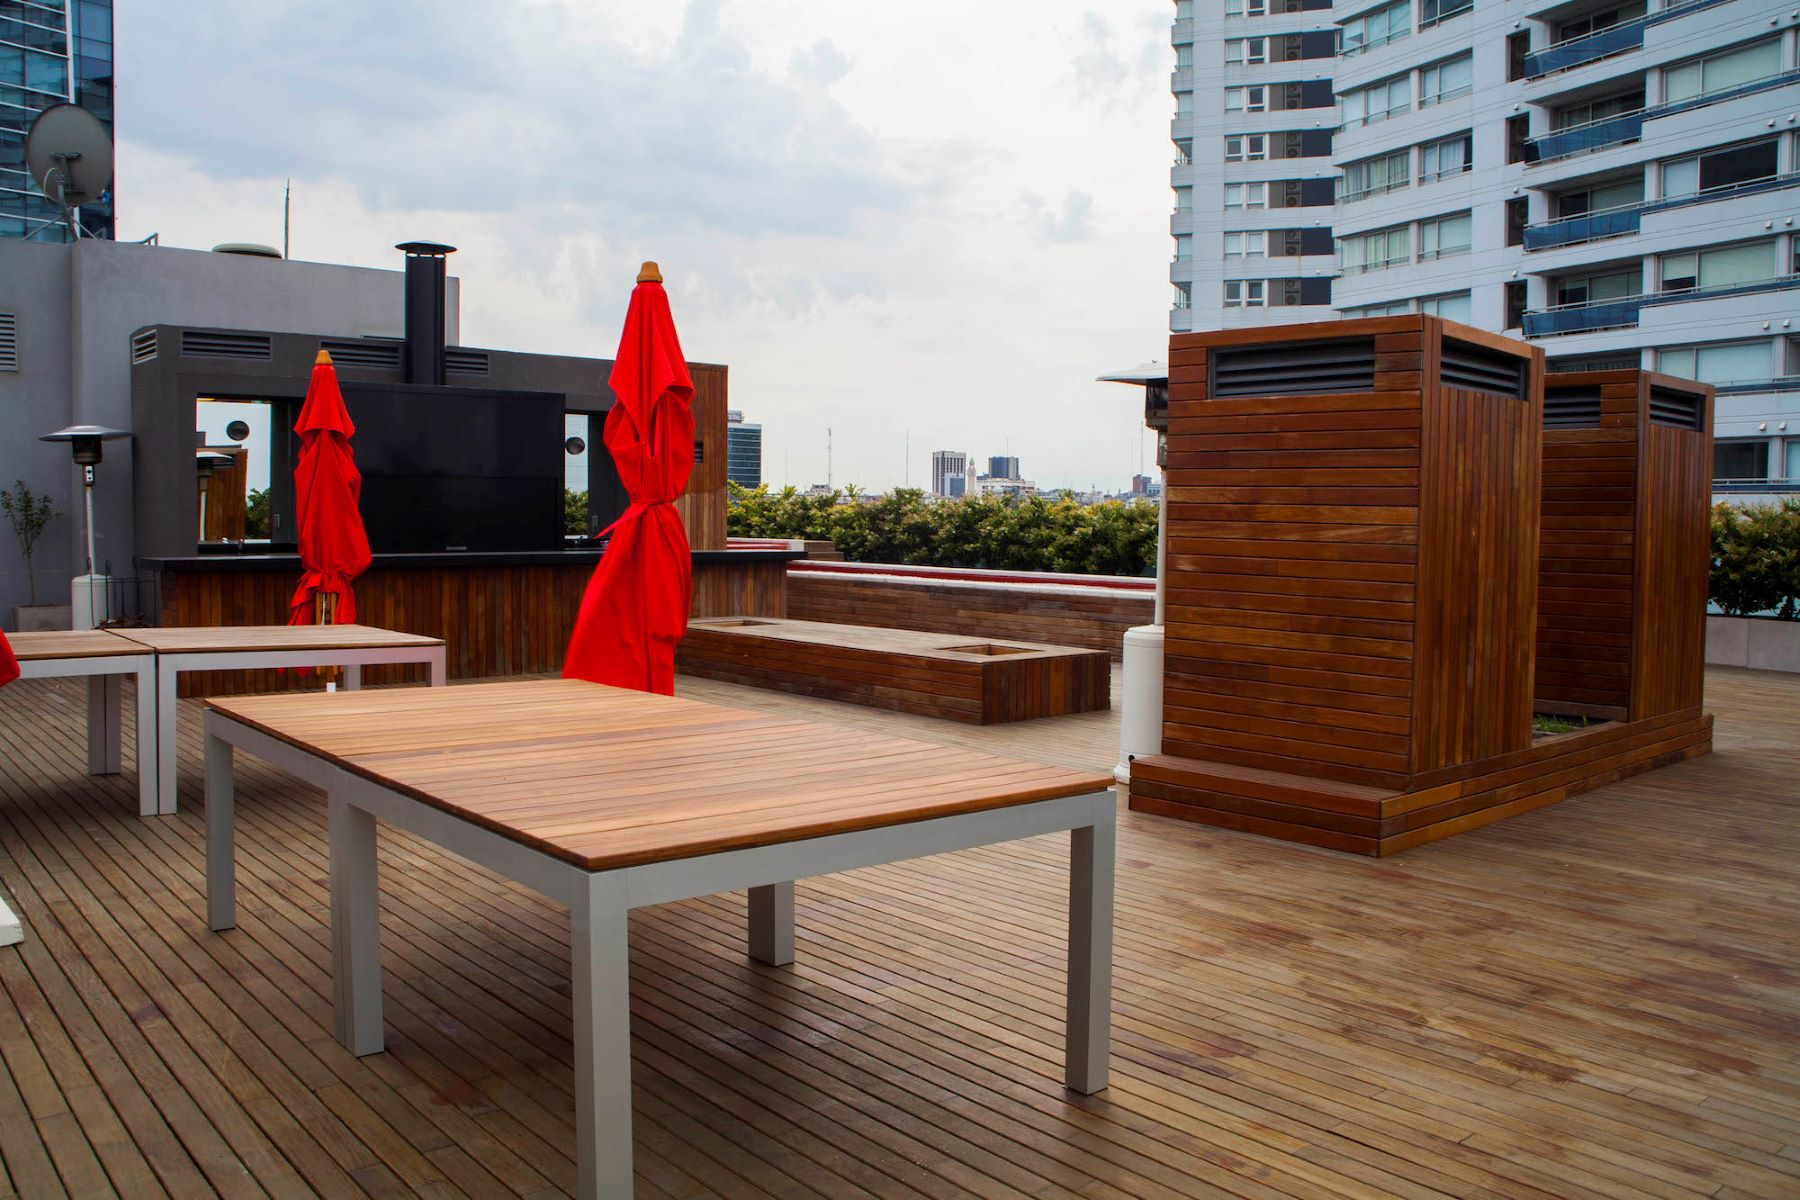 Additional photo for property listing at Unique Penthouse in Puerto Madero Lola Mora 457 Other Argentina, Other Areas In Argentina 1107 Argentina